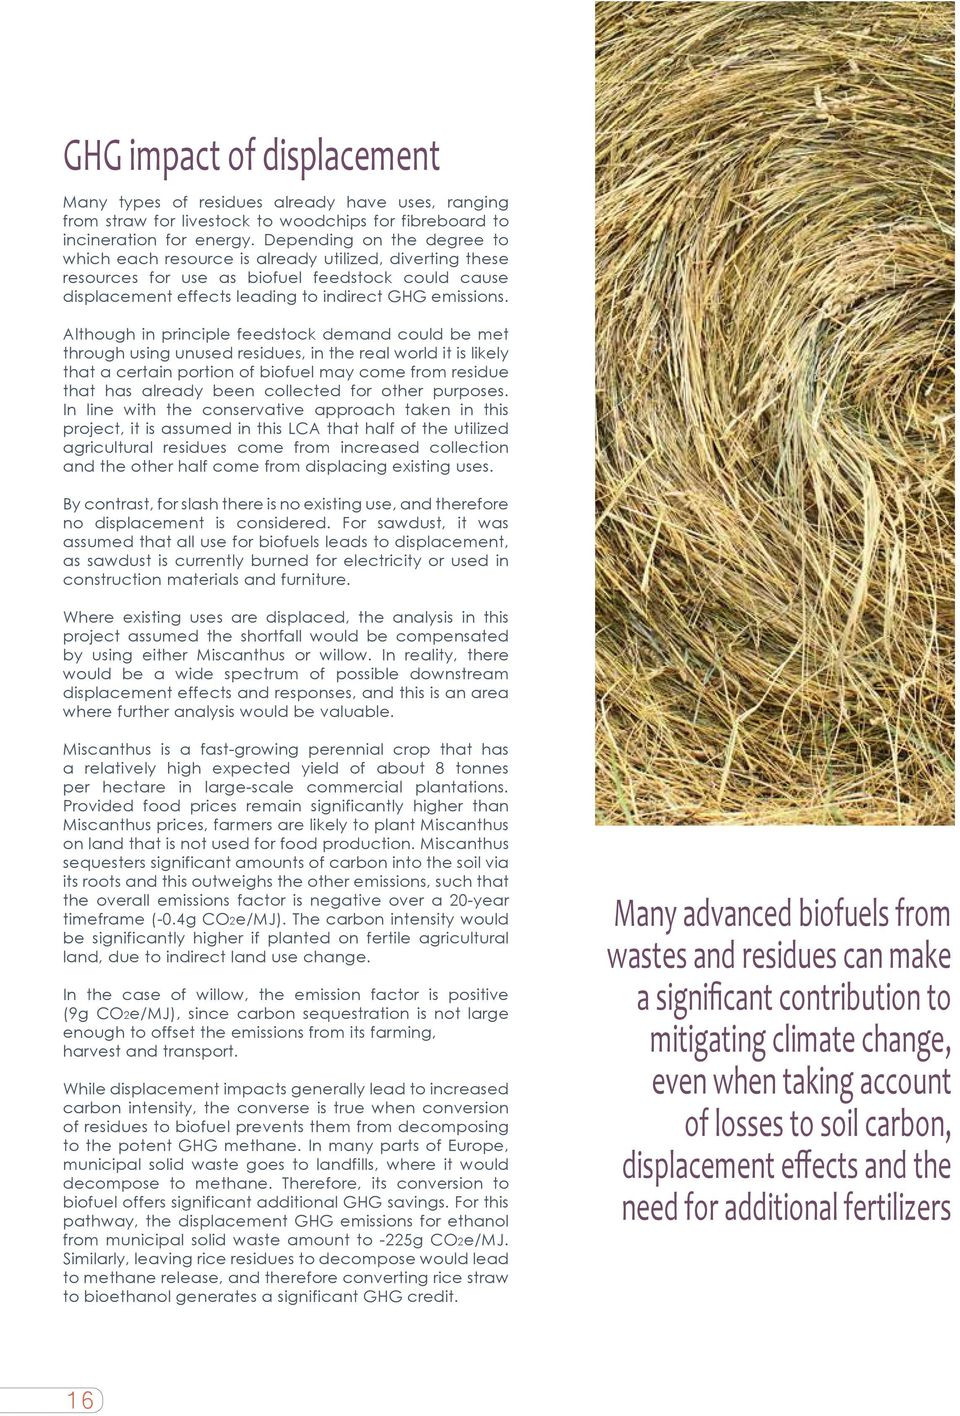 Although in principle feedstock demand could be met through using unused residues, in the real world it is likely that a certain portion of biofuel may come from residue that has already been